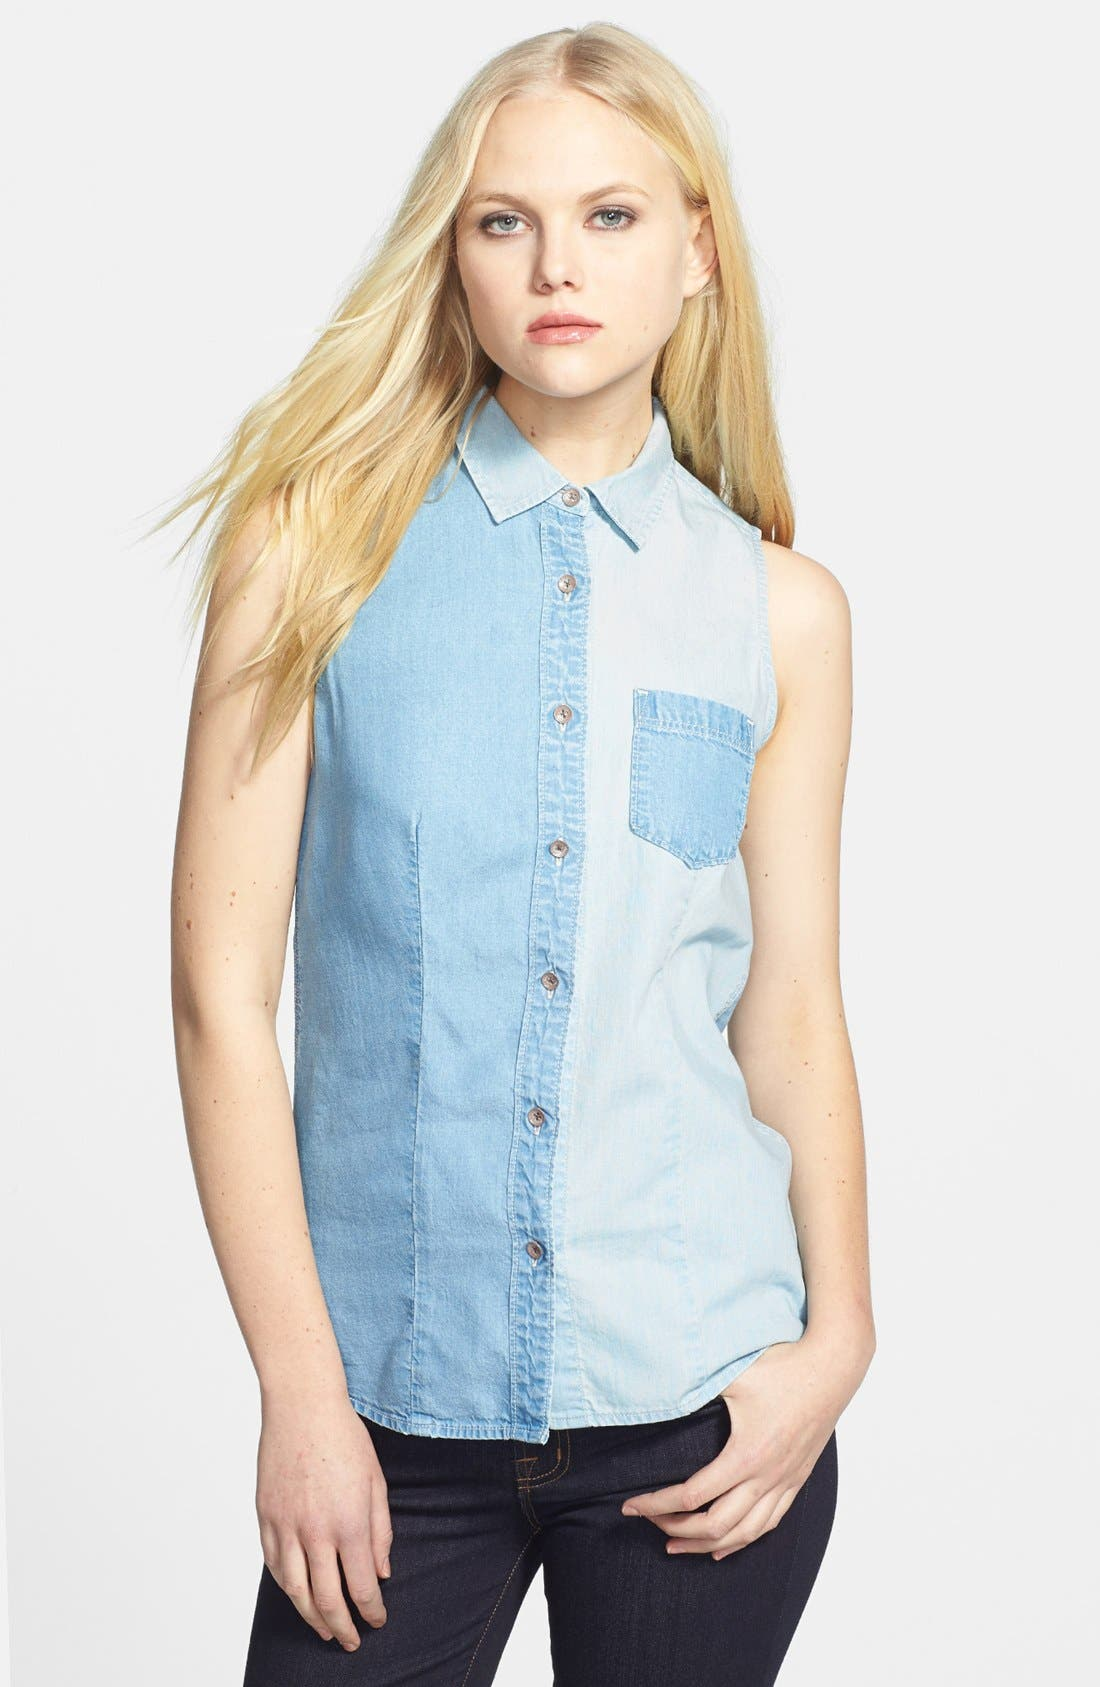 Main Image - Two by Vince Camuto 'Bleached Boy' Sleeveless Denim Shirt